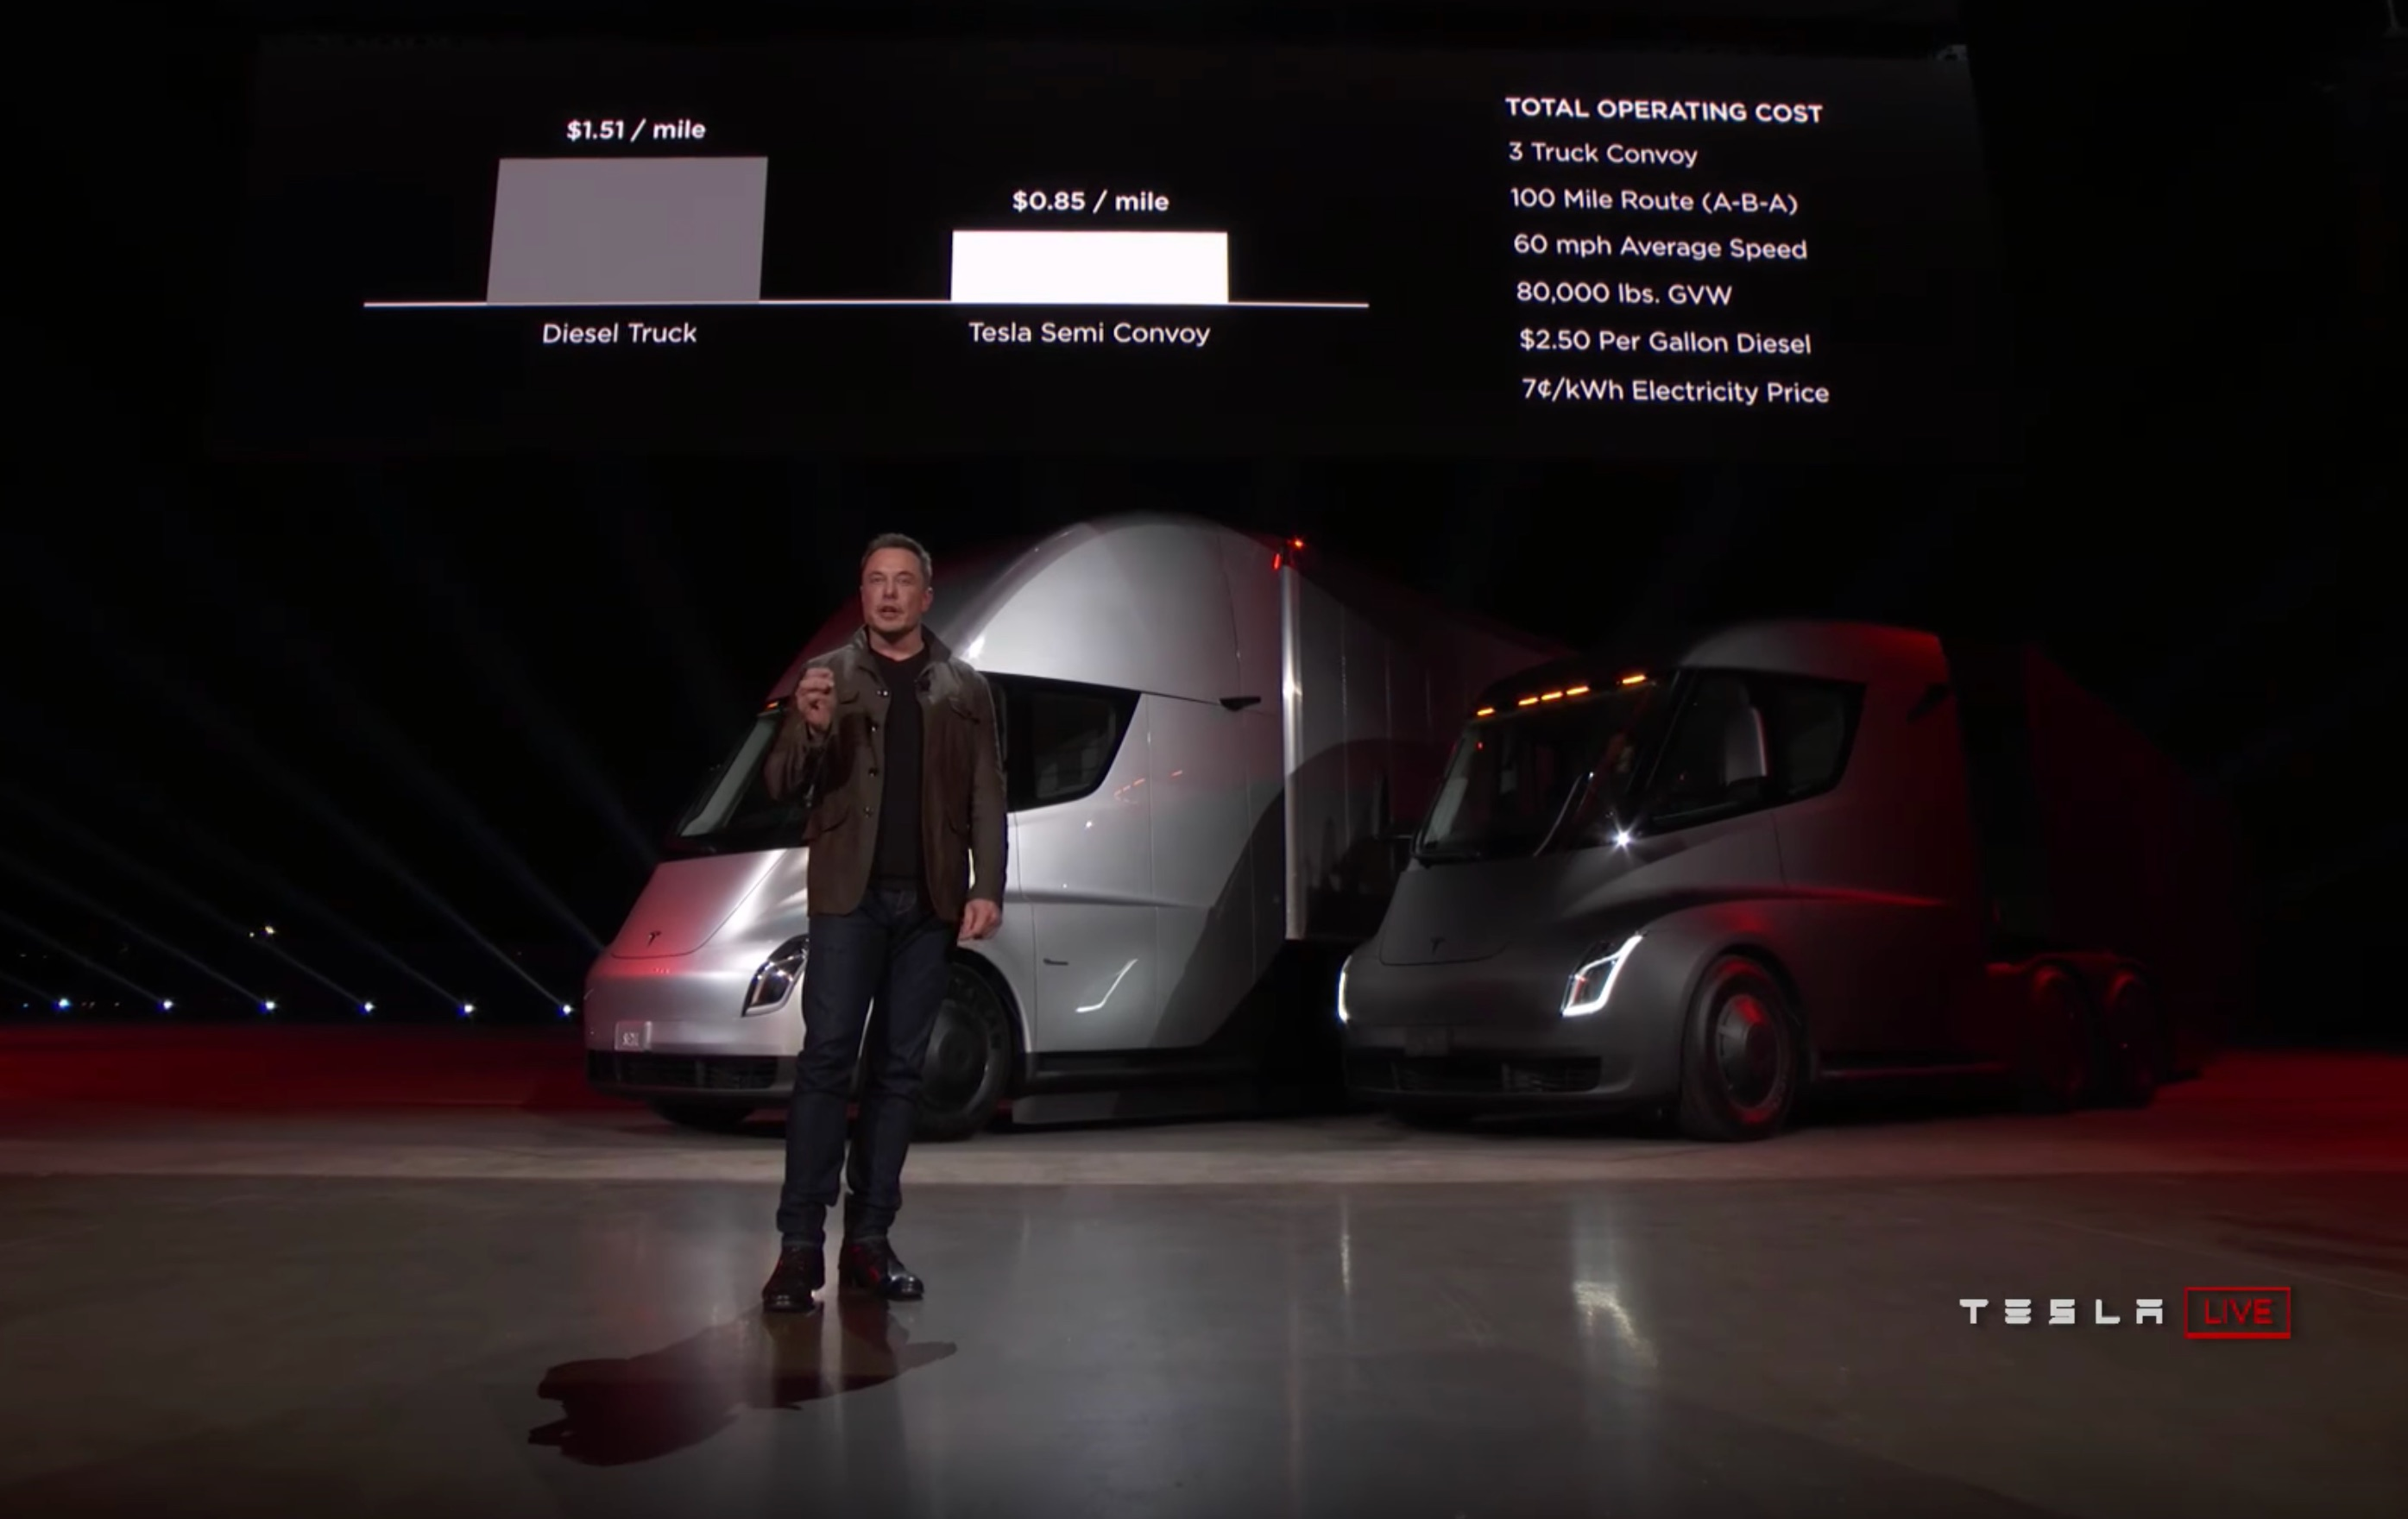 tesla-semi-convoy-technology-cost-vs-diesel